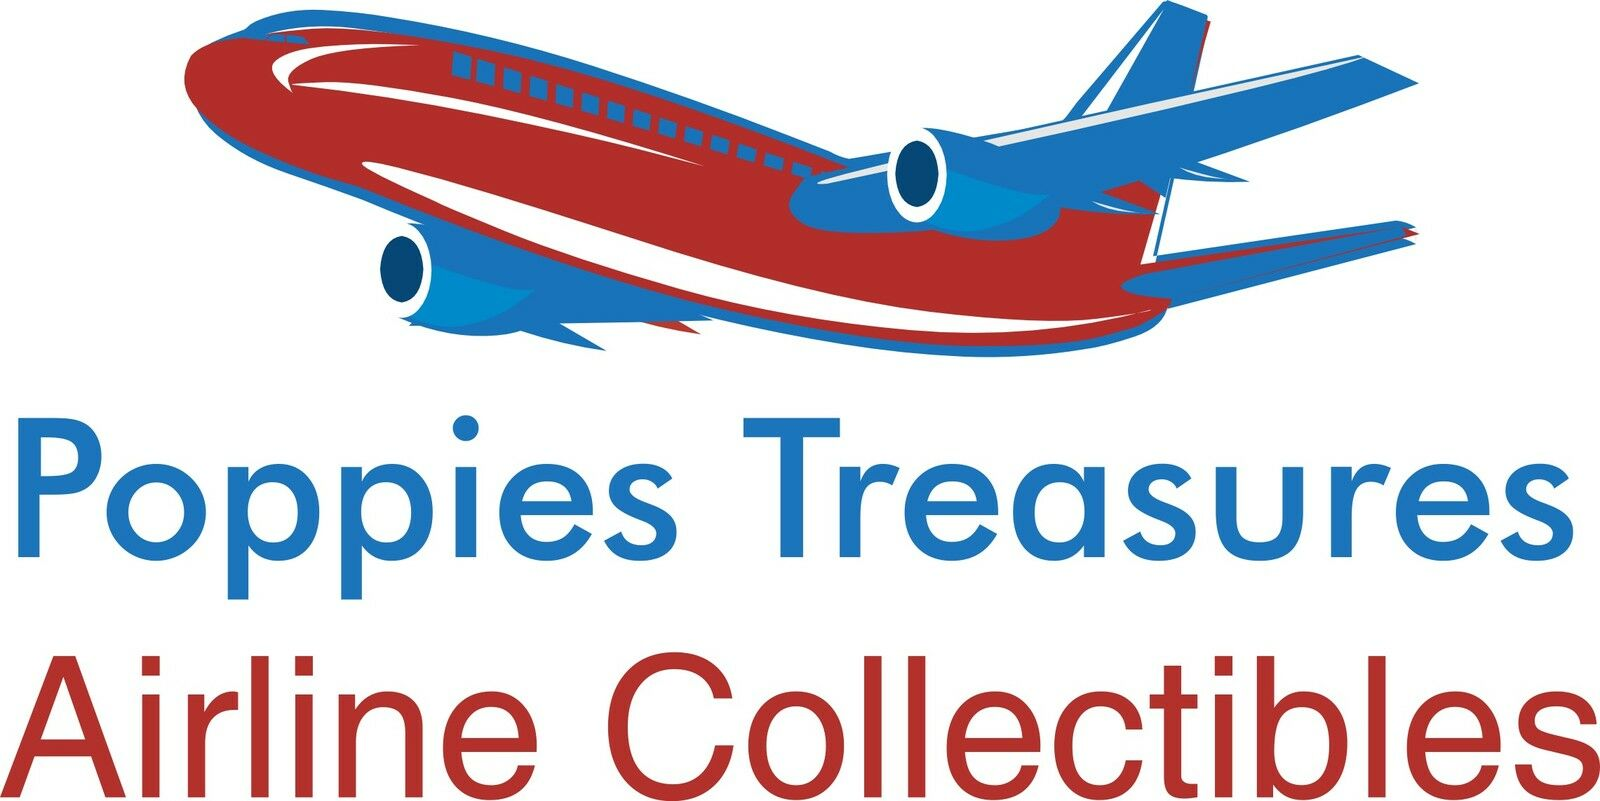 All Airline Collectibles